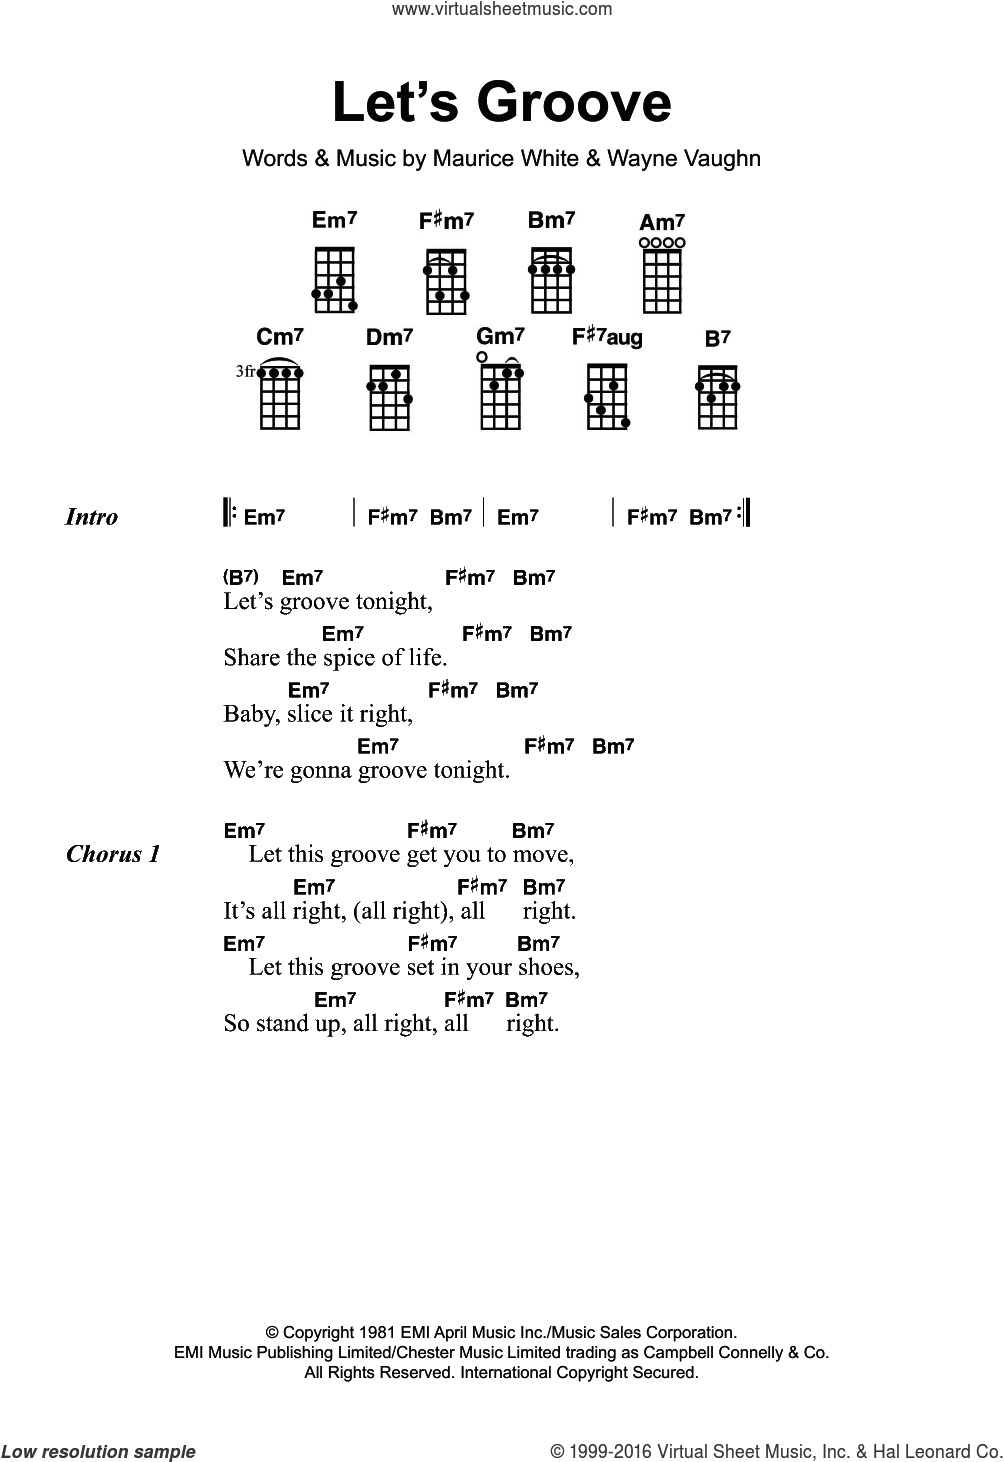 Let's Groove sheet music for ukulele by Earth, Wind & Fire. Score Image Preview.